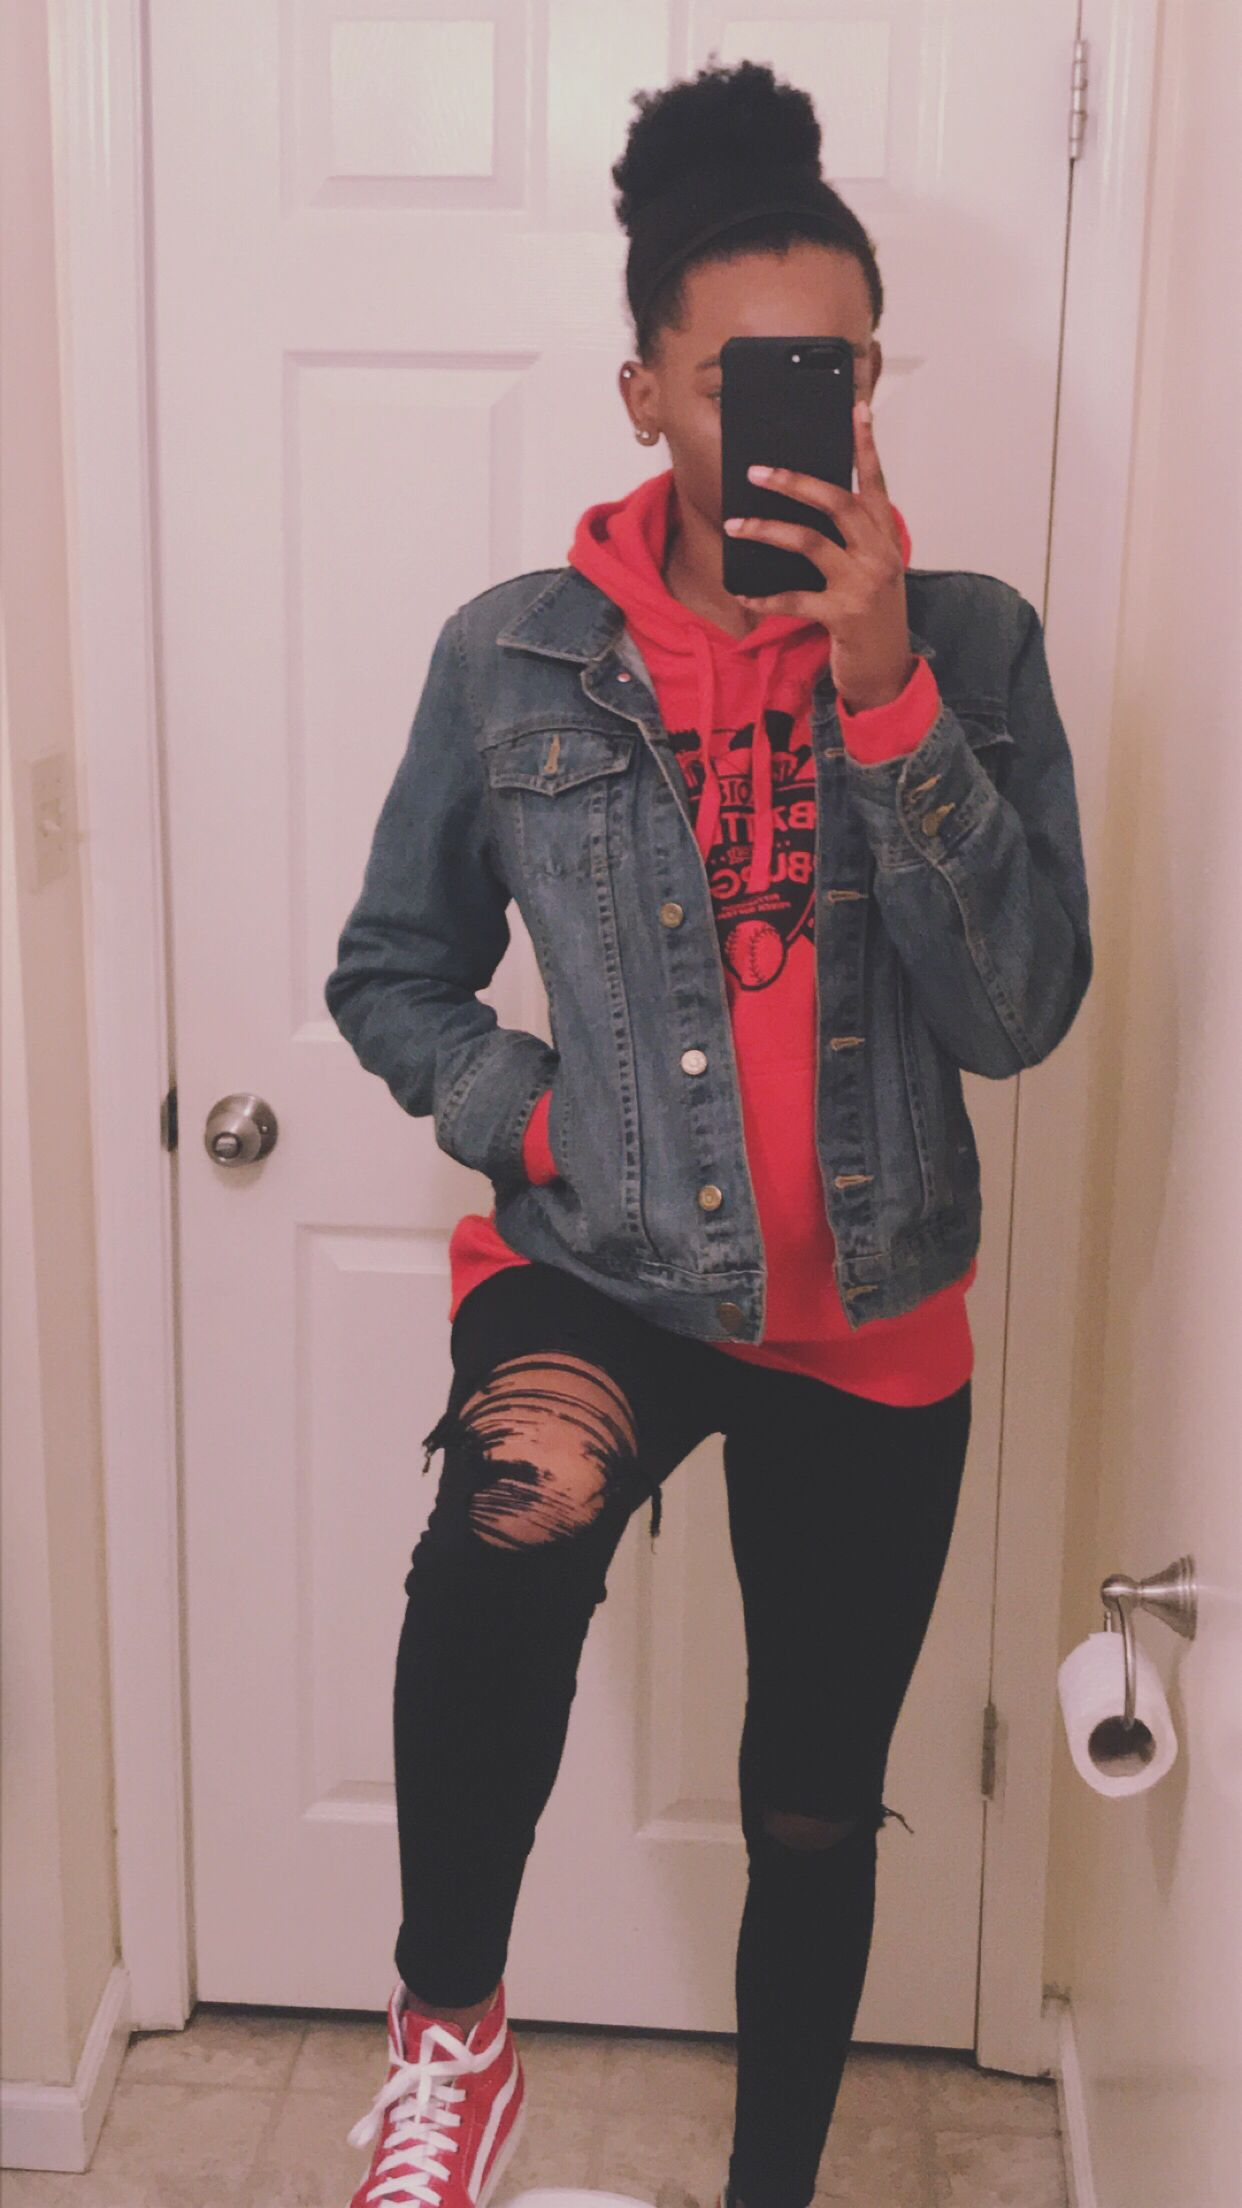 Jean Jacket Over Sweatshirt Black Ripped Jeans And Red High Top